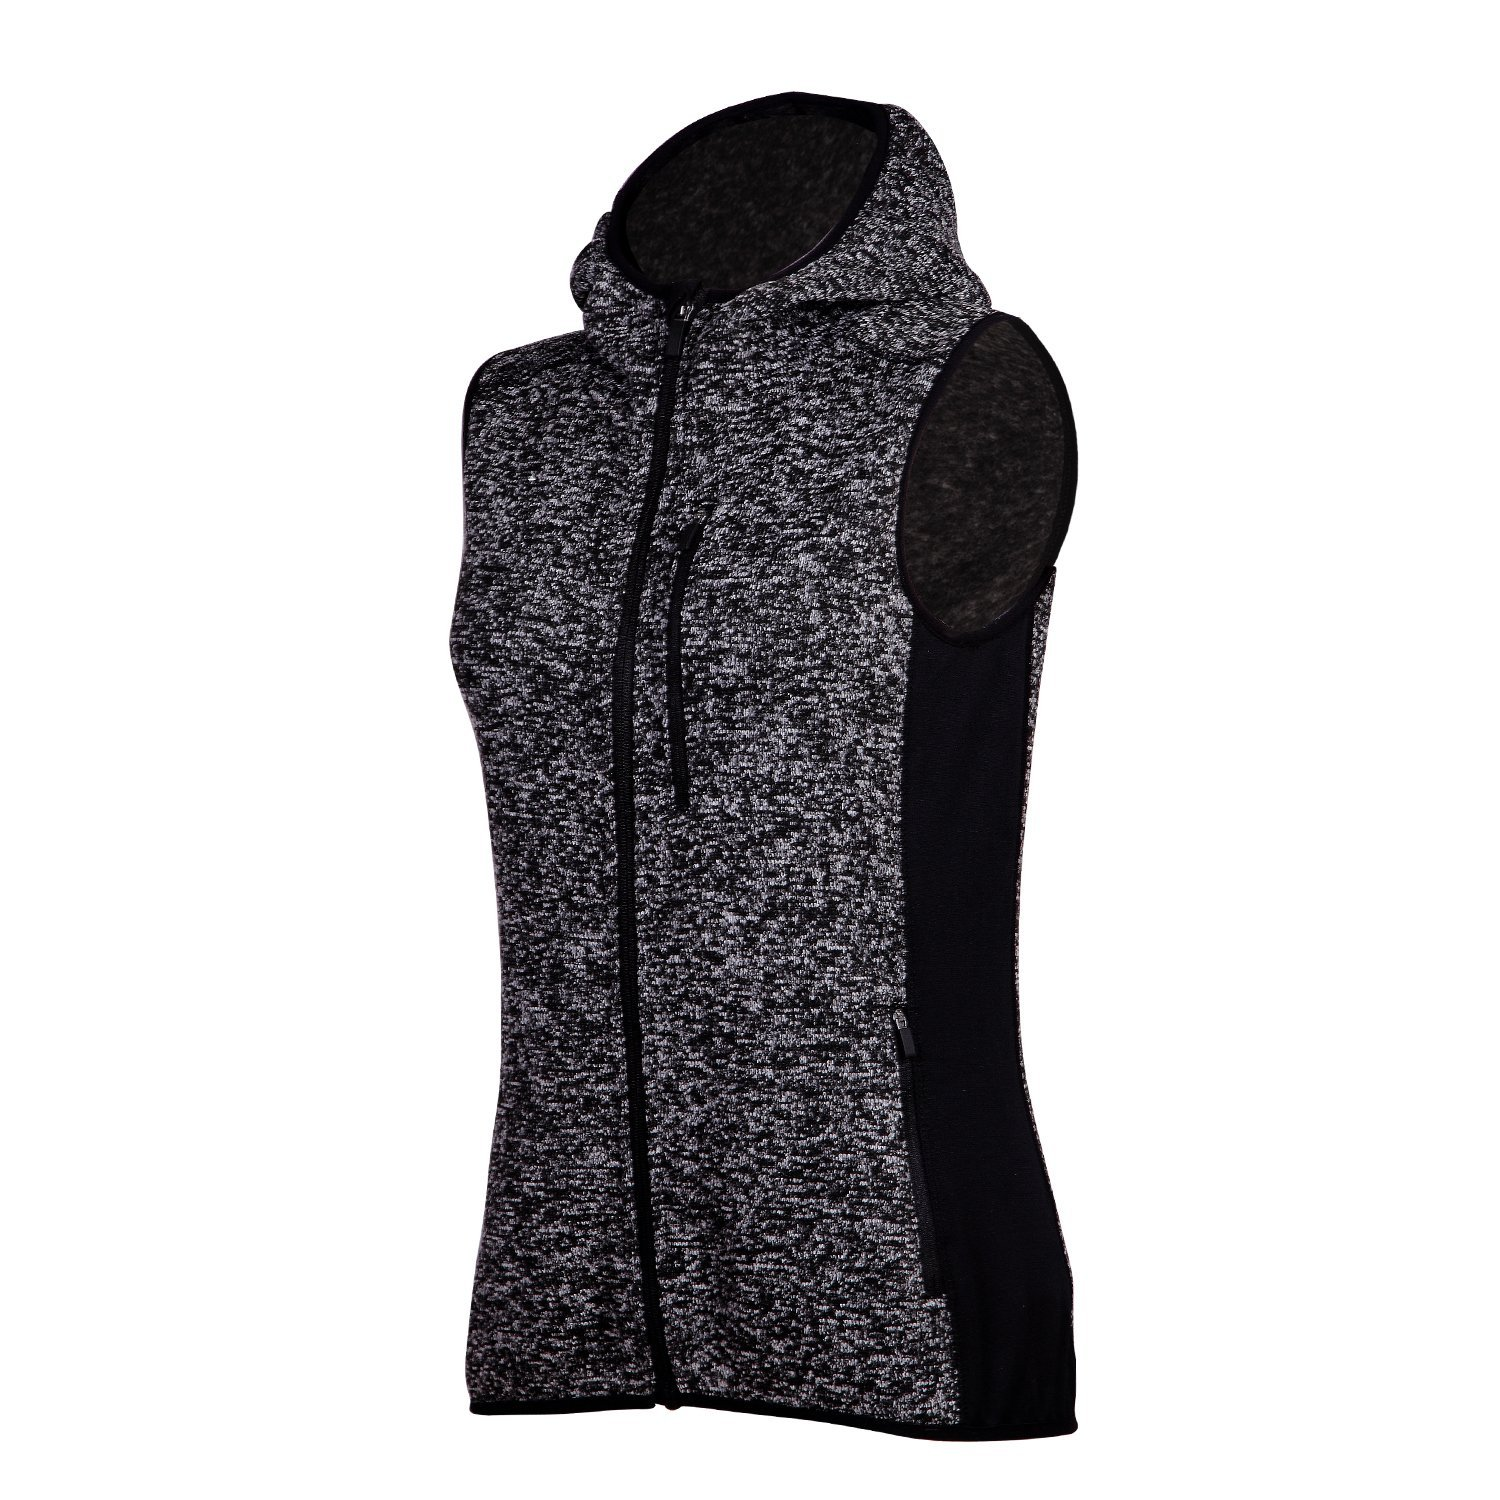 faa609fa59db Get Quotations · spoear Zip Up Womens Vest with Zipper Pockets Athletic  Sweater Fleece Vest Sleeveless Sweater Jacket